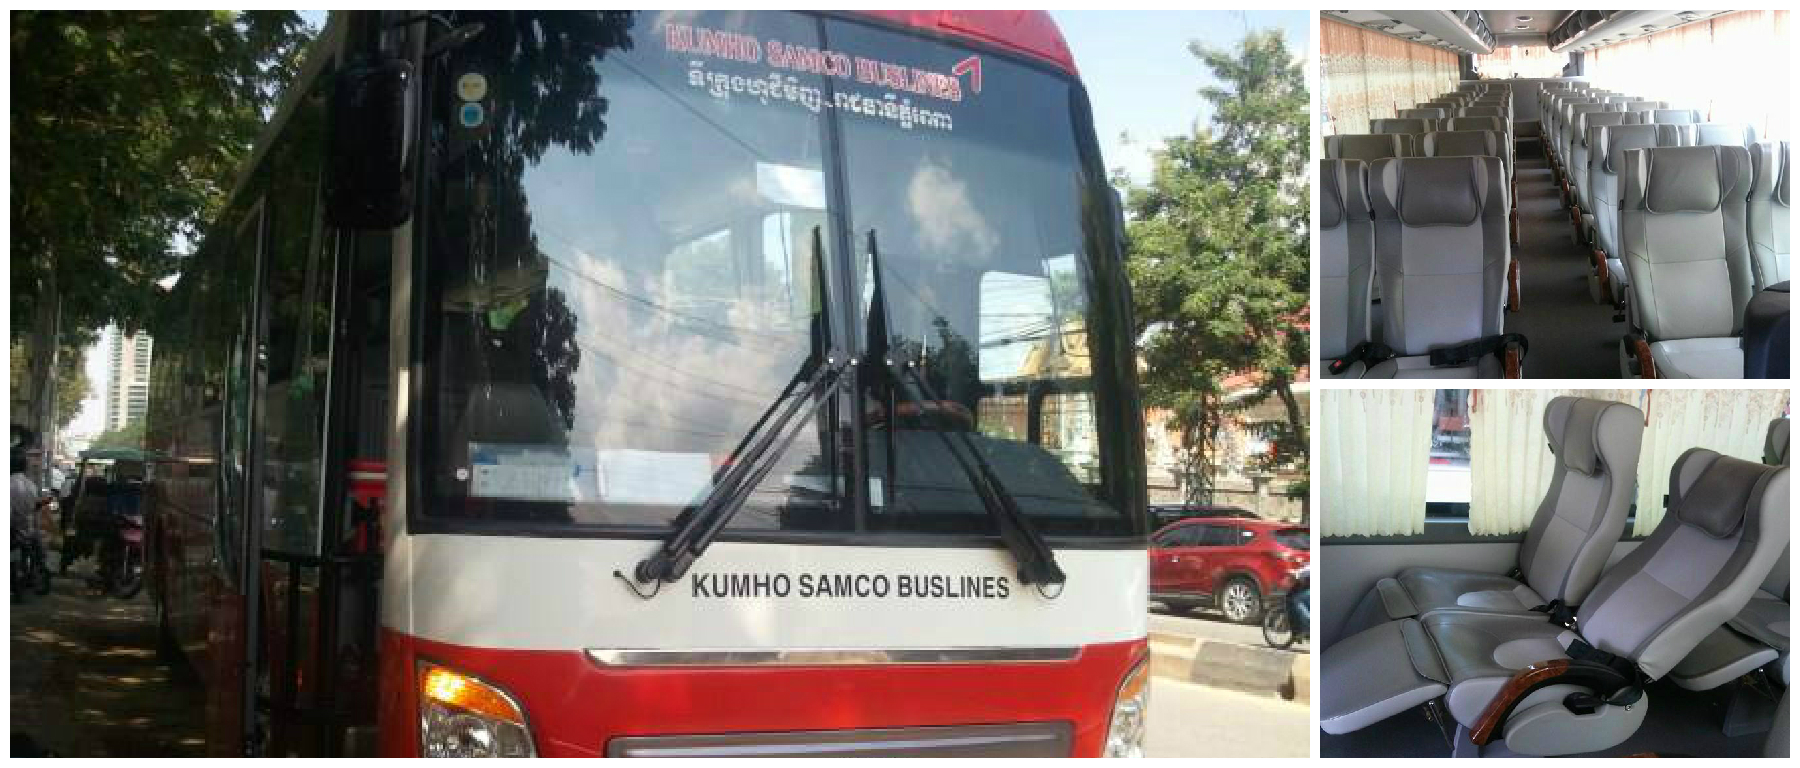 Kumho Samco Bus Ticket, Phnom Penh to Ho Chi Minh, Phnom Penh to Siem Reap, Bus Ticket Online, Night Bus, Cambodia Bus Ticket, Vietnam to Cambodia